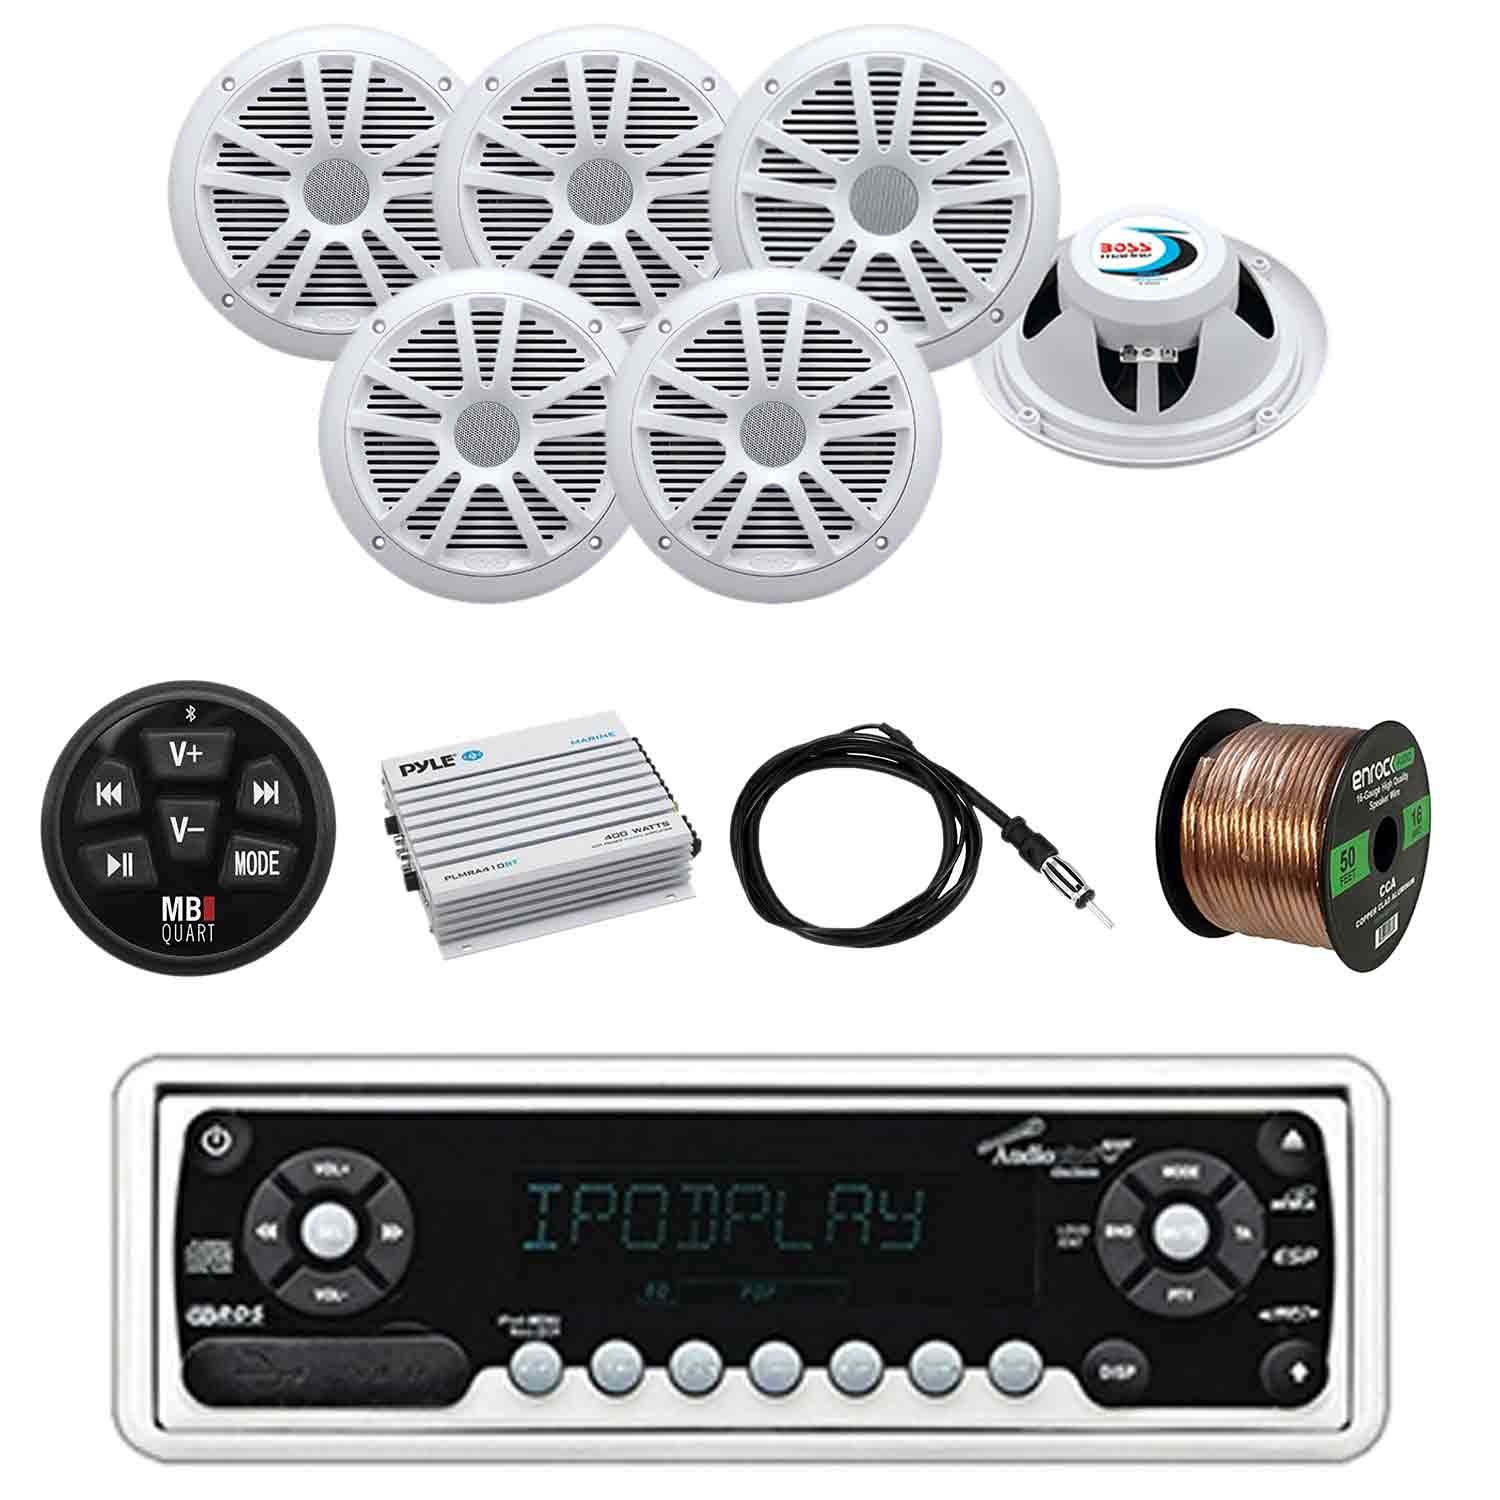 [TVPR_3874]  Audiopipe Marine Stereo with MB Quart Wired BT Preamp Controller, Boss  Audio Marine Speakers (3-Pairs), Pyle W/P BT Amplifier, Enrock Marine  Antenna and Enrock Audio Marine Grade 50' 16G Speaker Wire - | Boss Marine Radio Speakers Wiring |  | Walmart.com